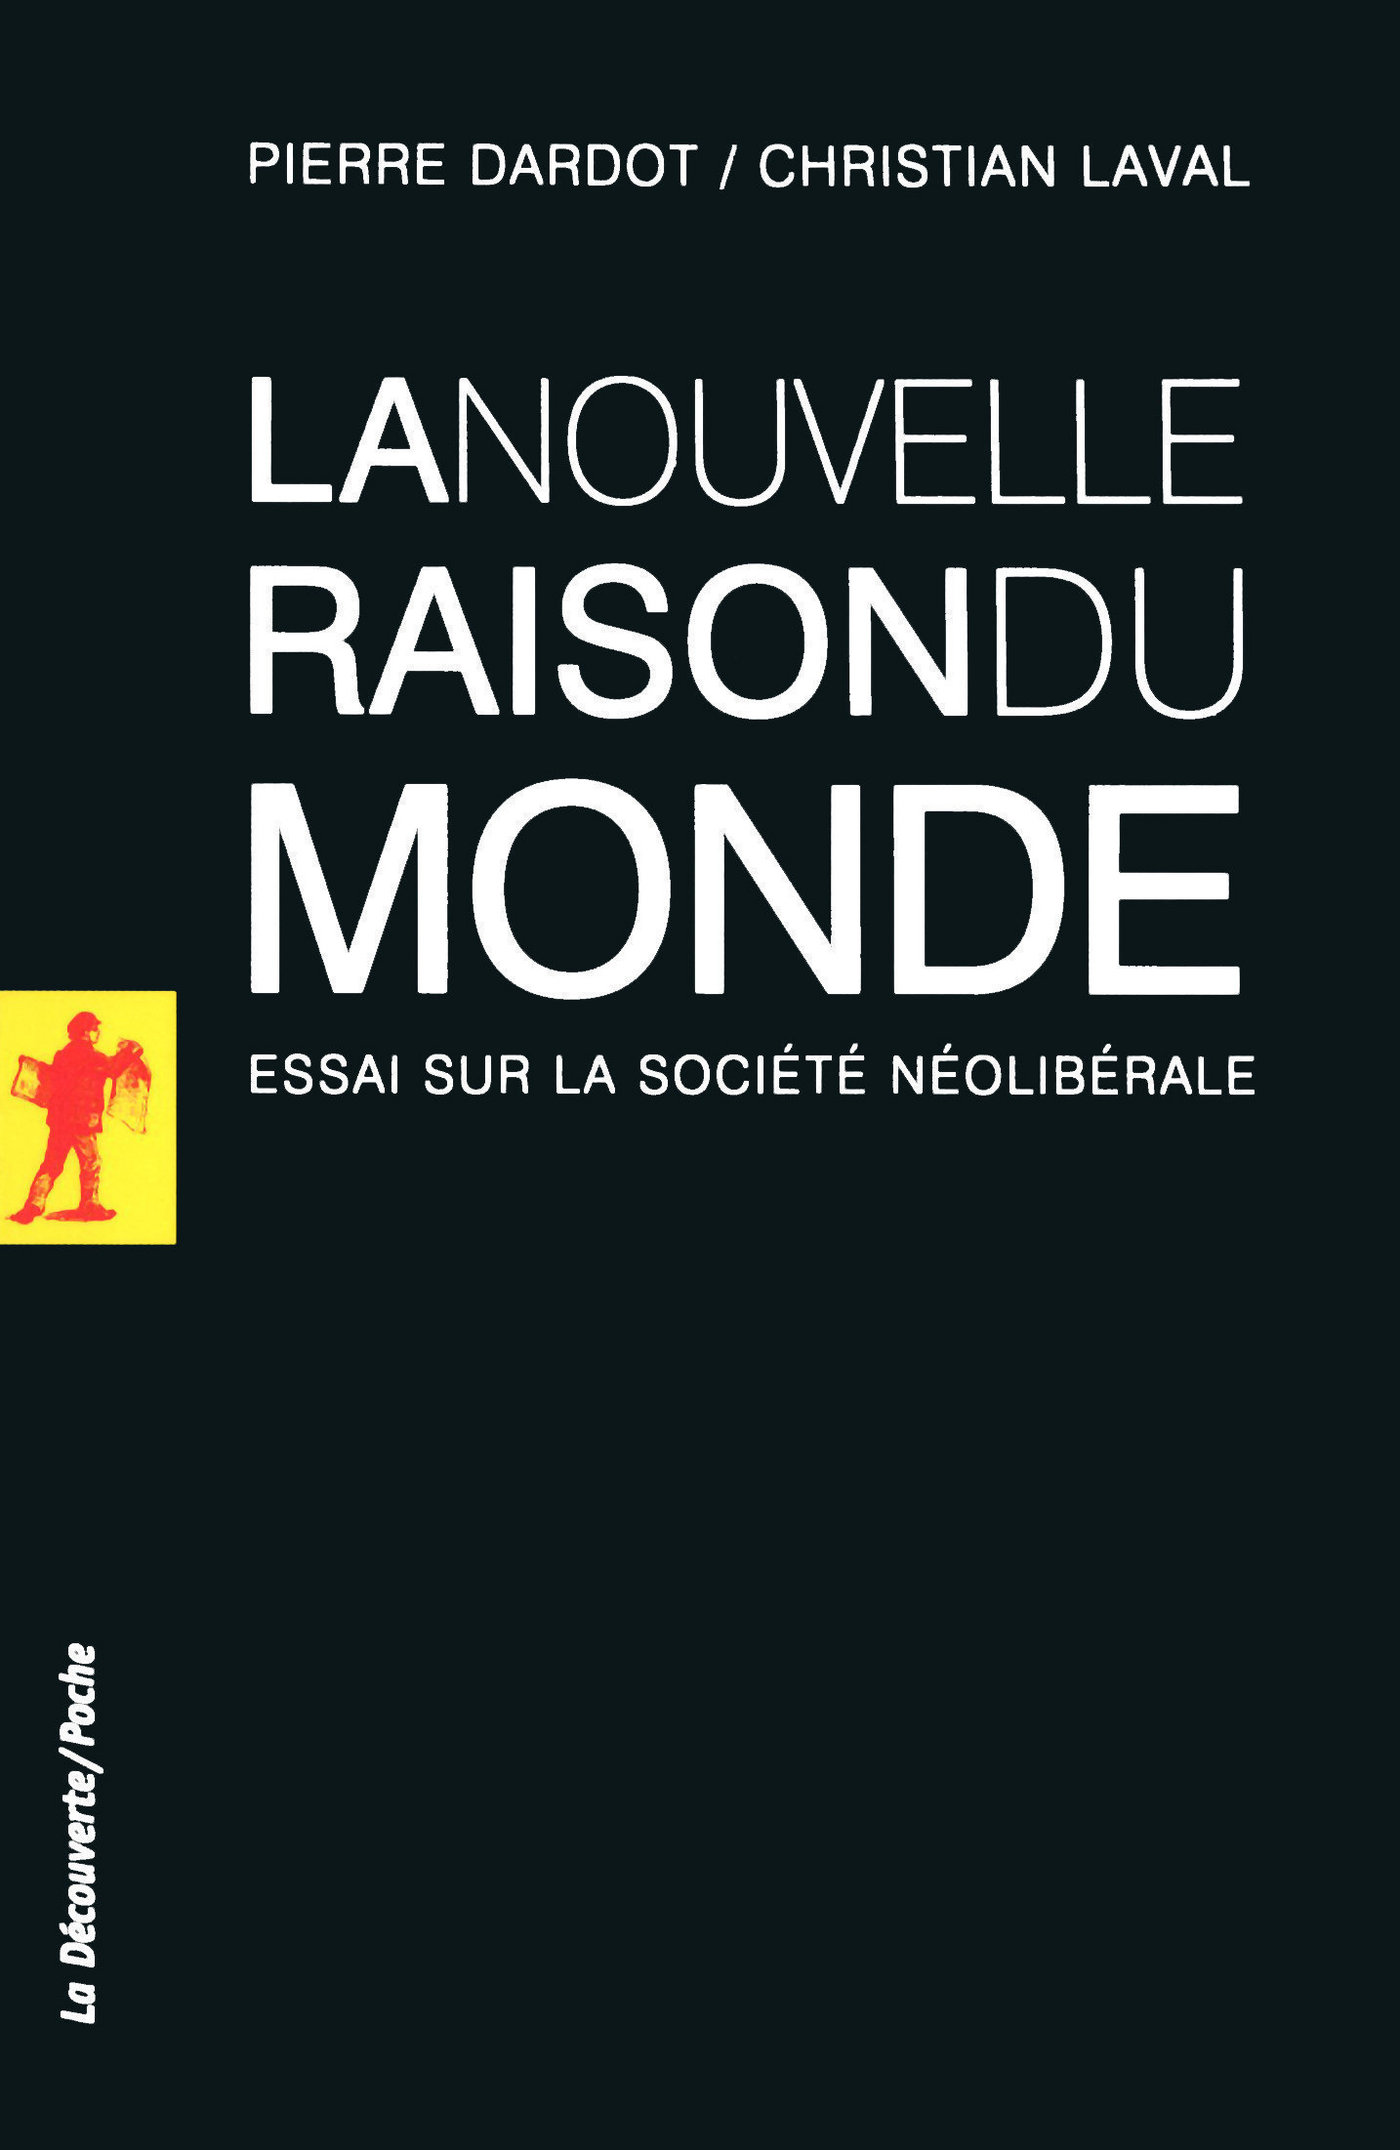 La nouvelle raison du monde (French Edition) - Pierre Dardot